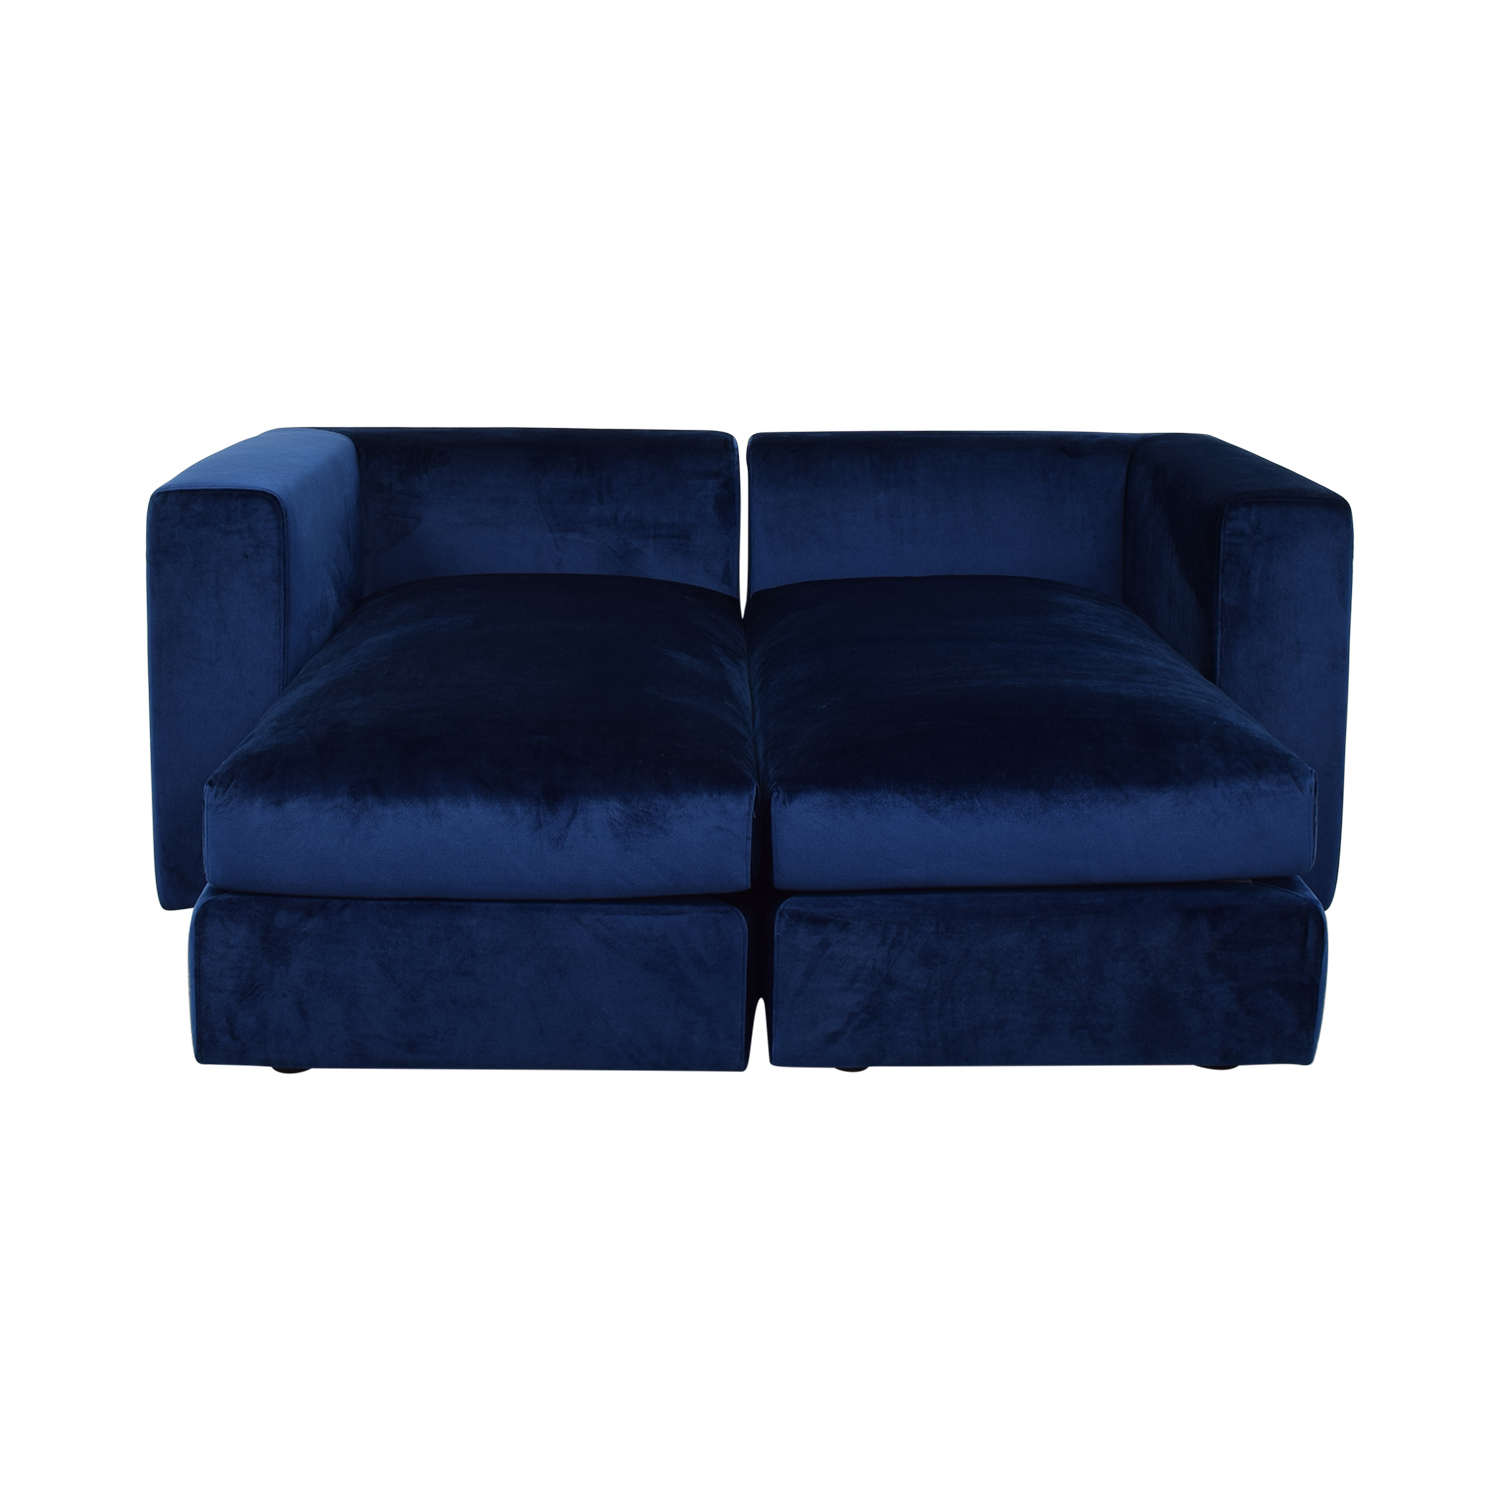 Interior Define Toby Velvet Oxford Blue Double Chaise Sectional Sofa discount